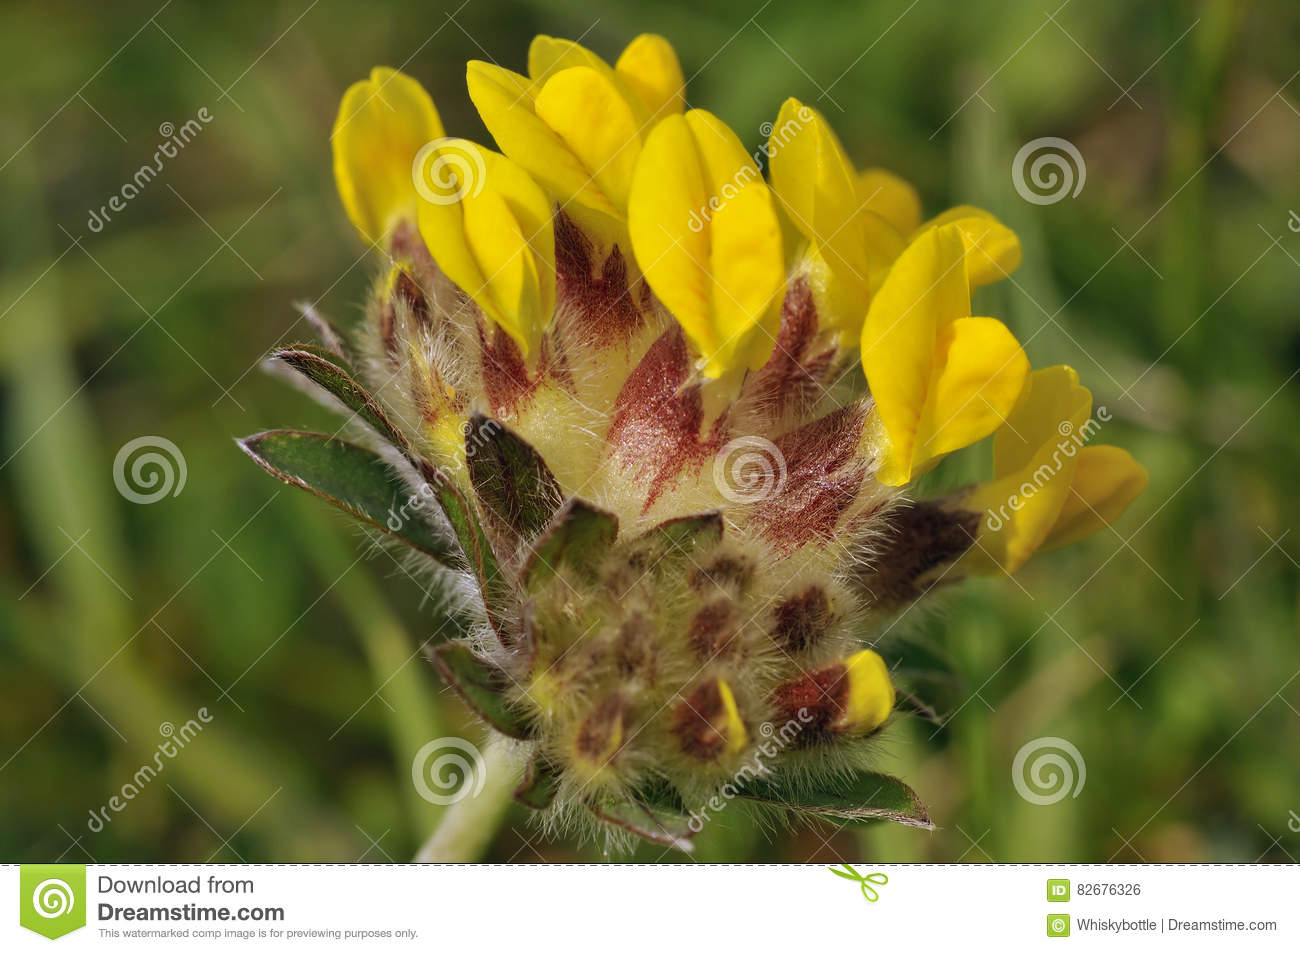 Kidney vetch stock photo image of vulneraria plant 82676326 kidney vetch anthyllis vulneraria yellow grassland flower mightylinksfo